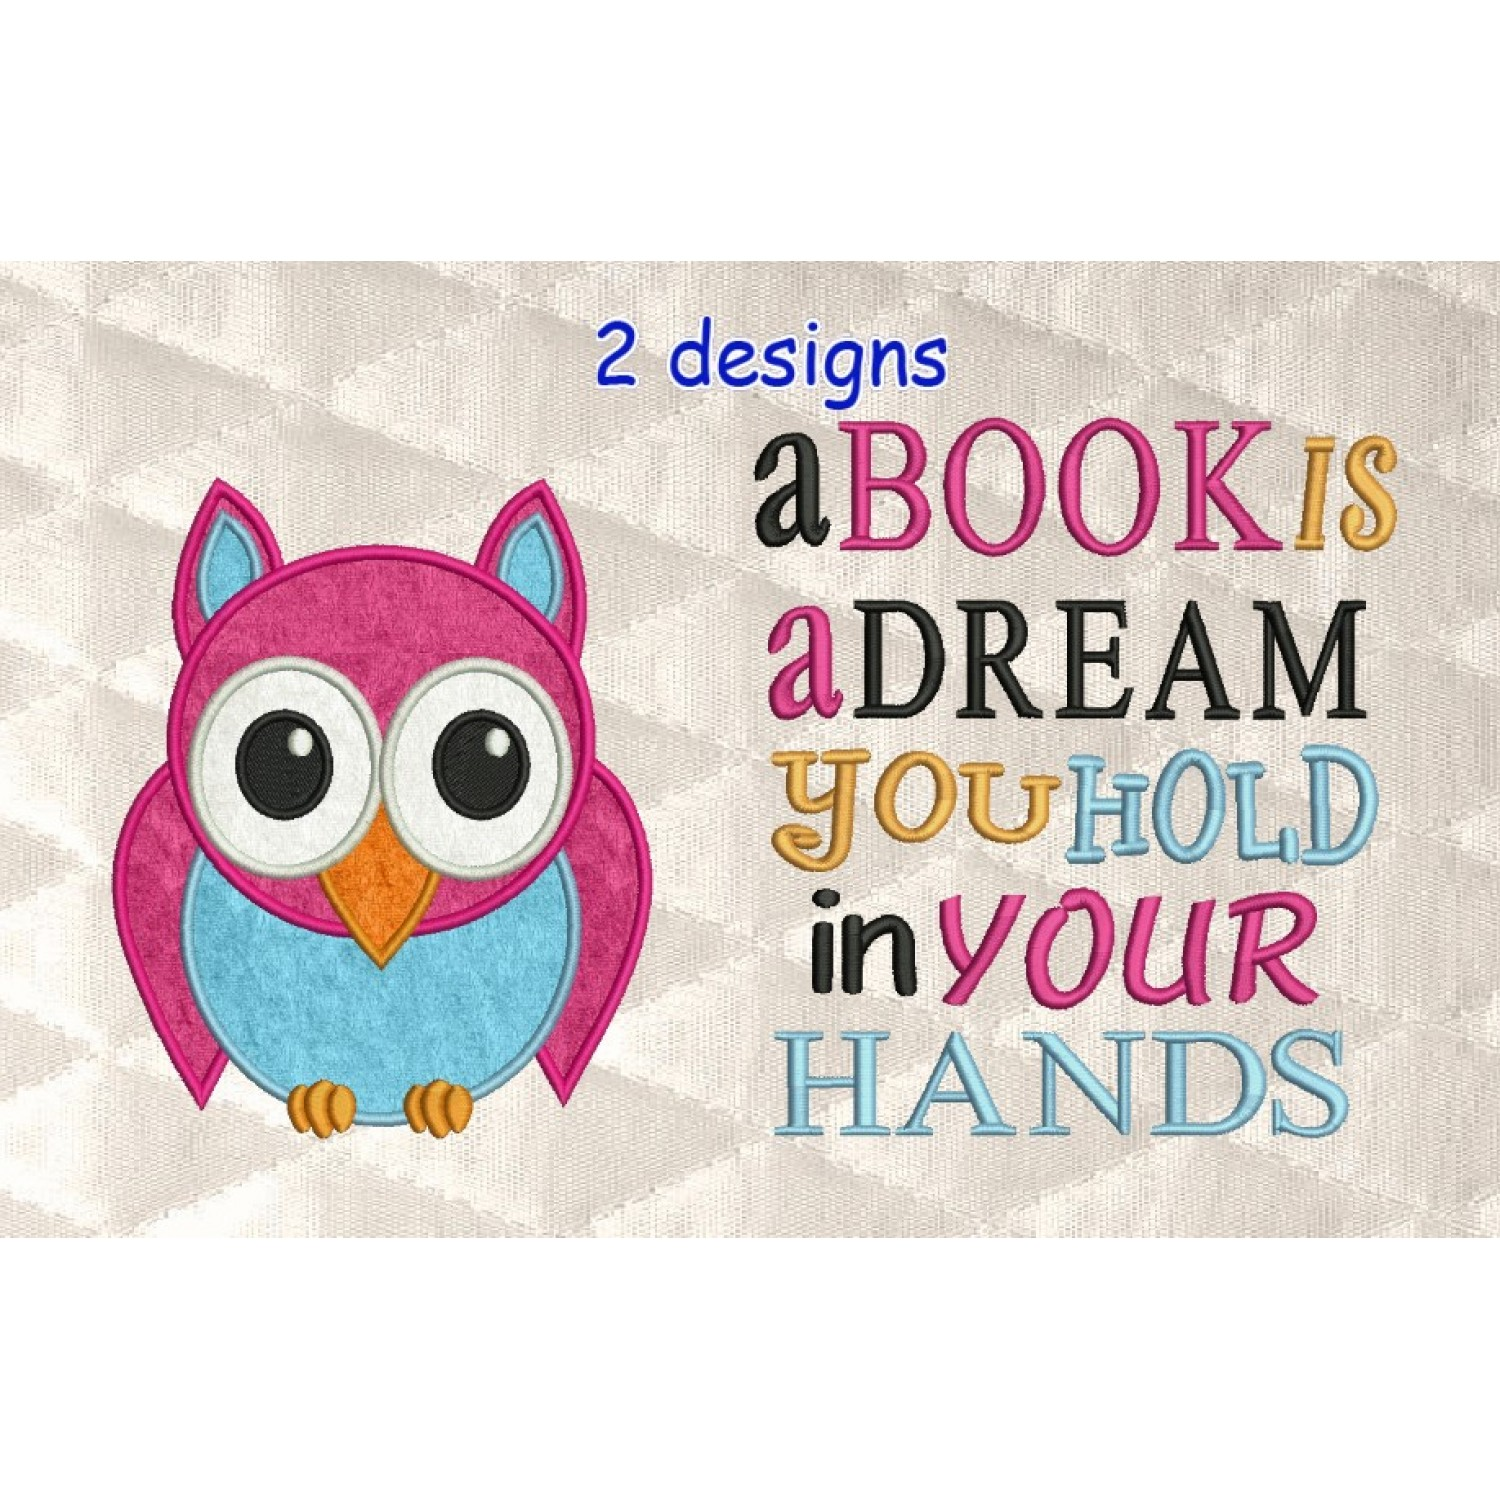 Owl applique with a book is a dream